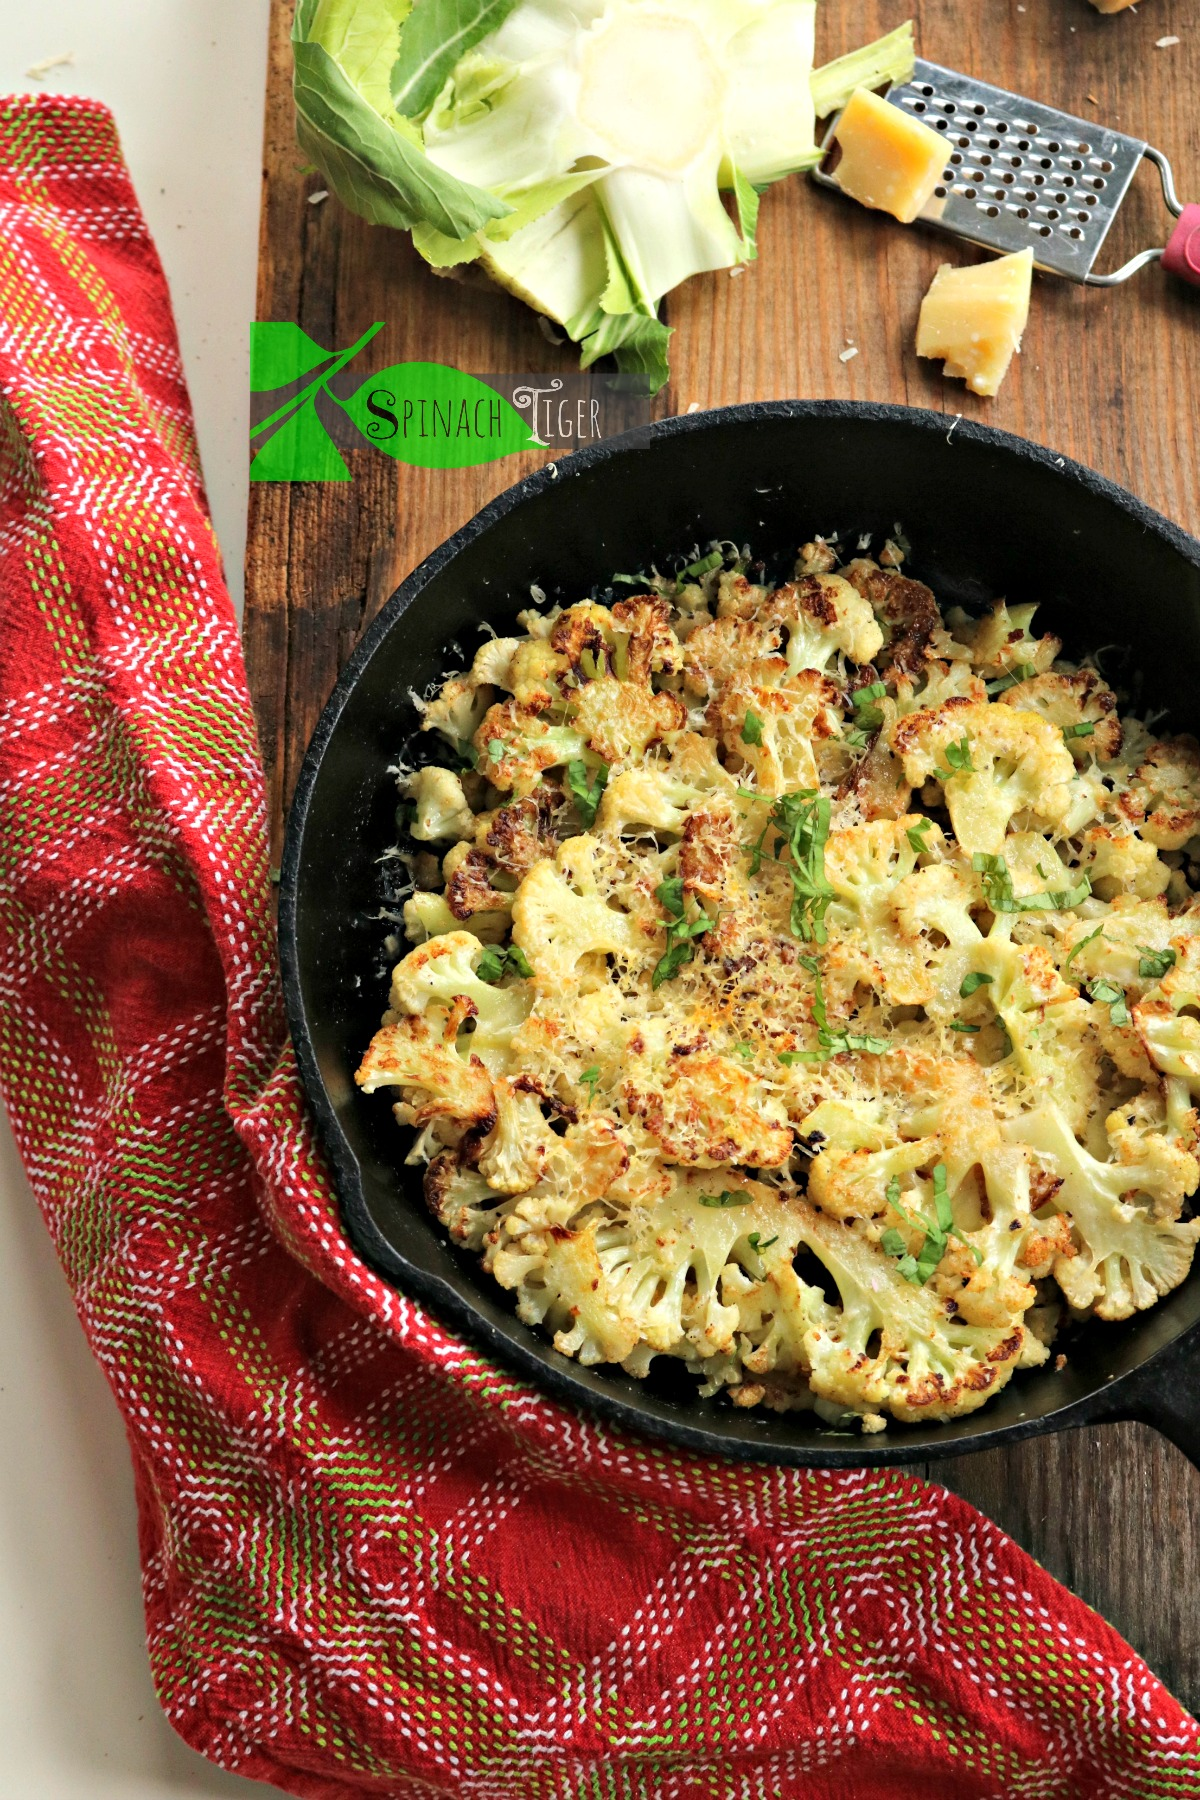 Oven Roasted Cauliflower Recipe with Butter and Parmesan from Spinach Tiger